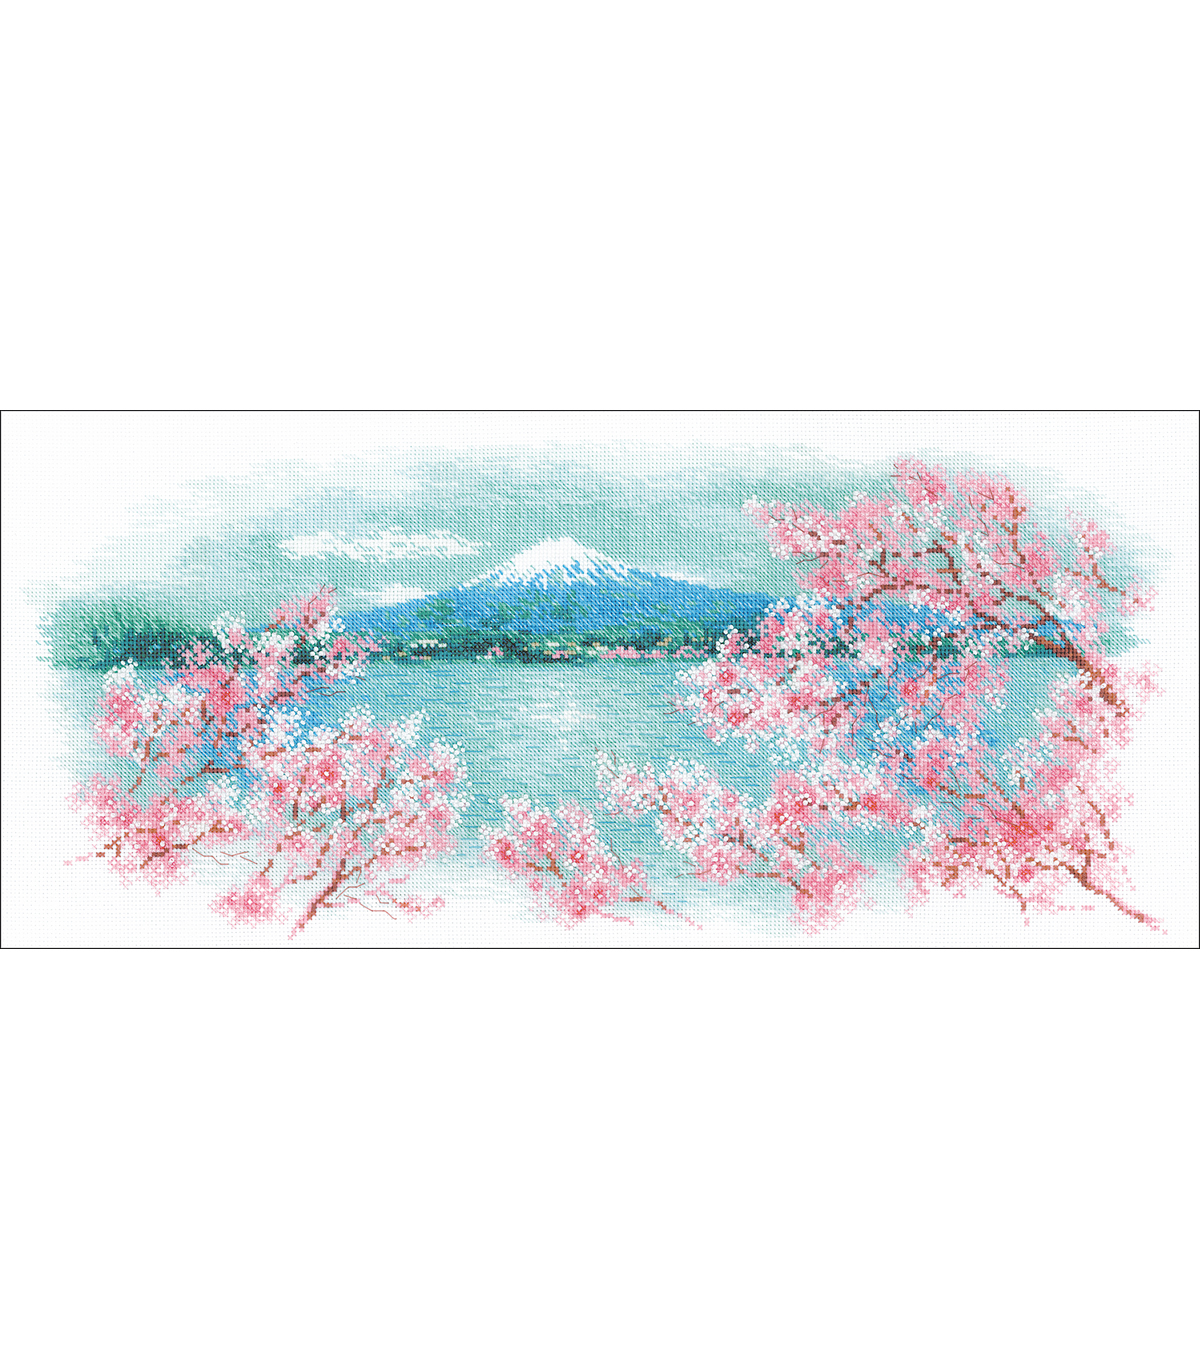 RIOLIS 21.75\u0027\u0027x9.75\u0027\u0027 14-count Counted Cross Stitch Kit-Sakura Fuji